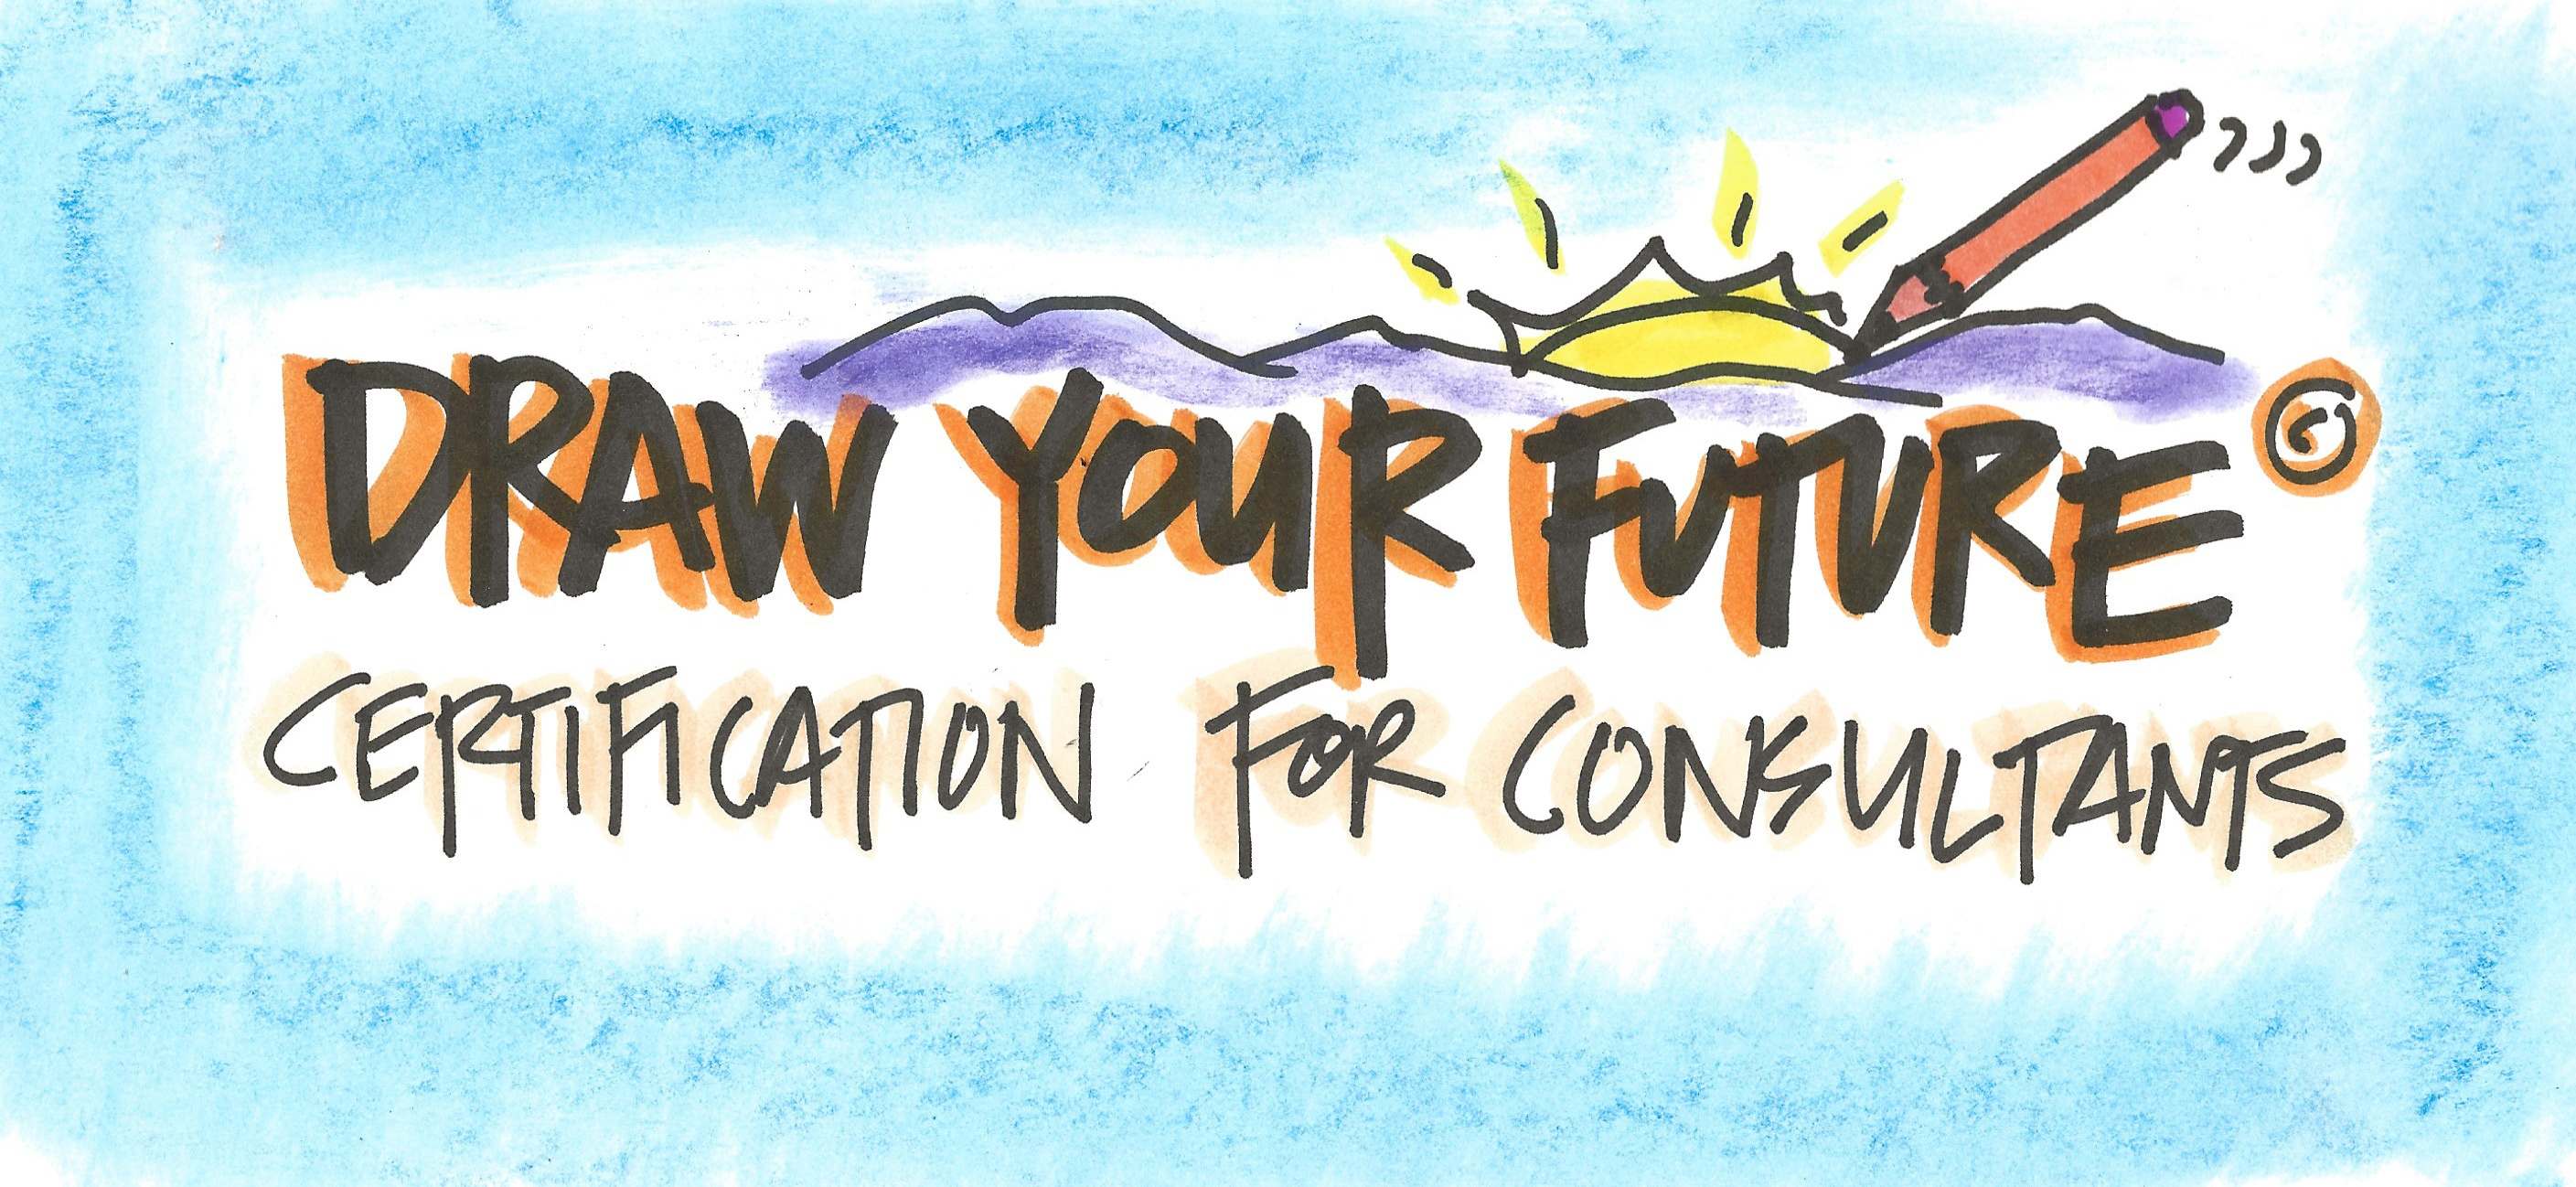 Draw Your Future Certification for Consultants- Class starts July 7th 7pm CST